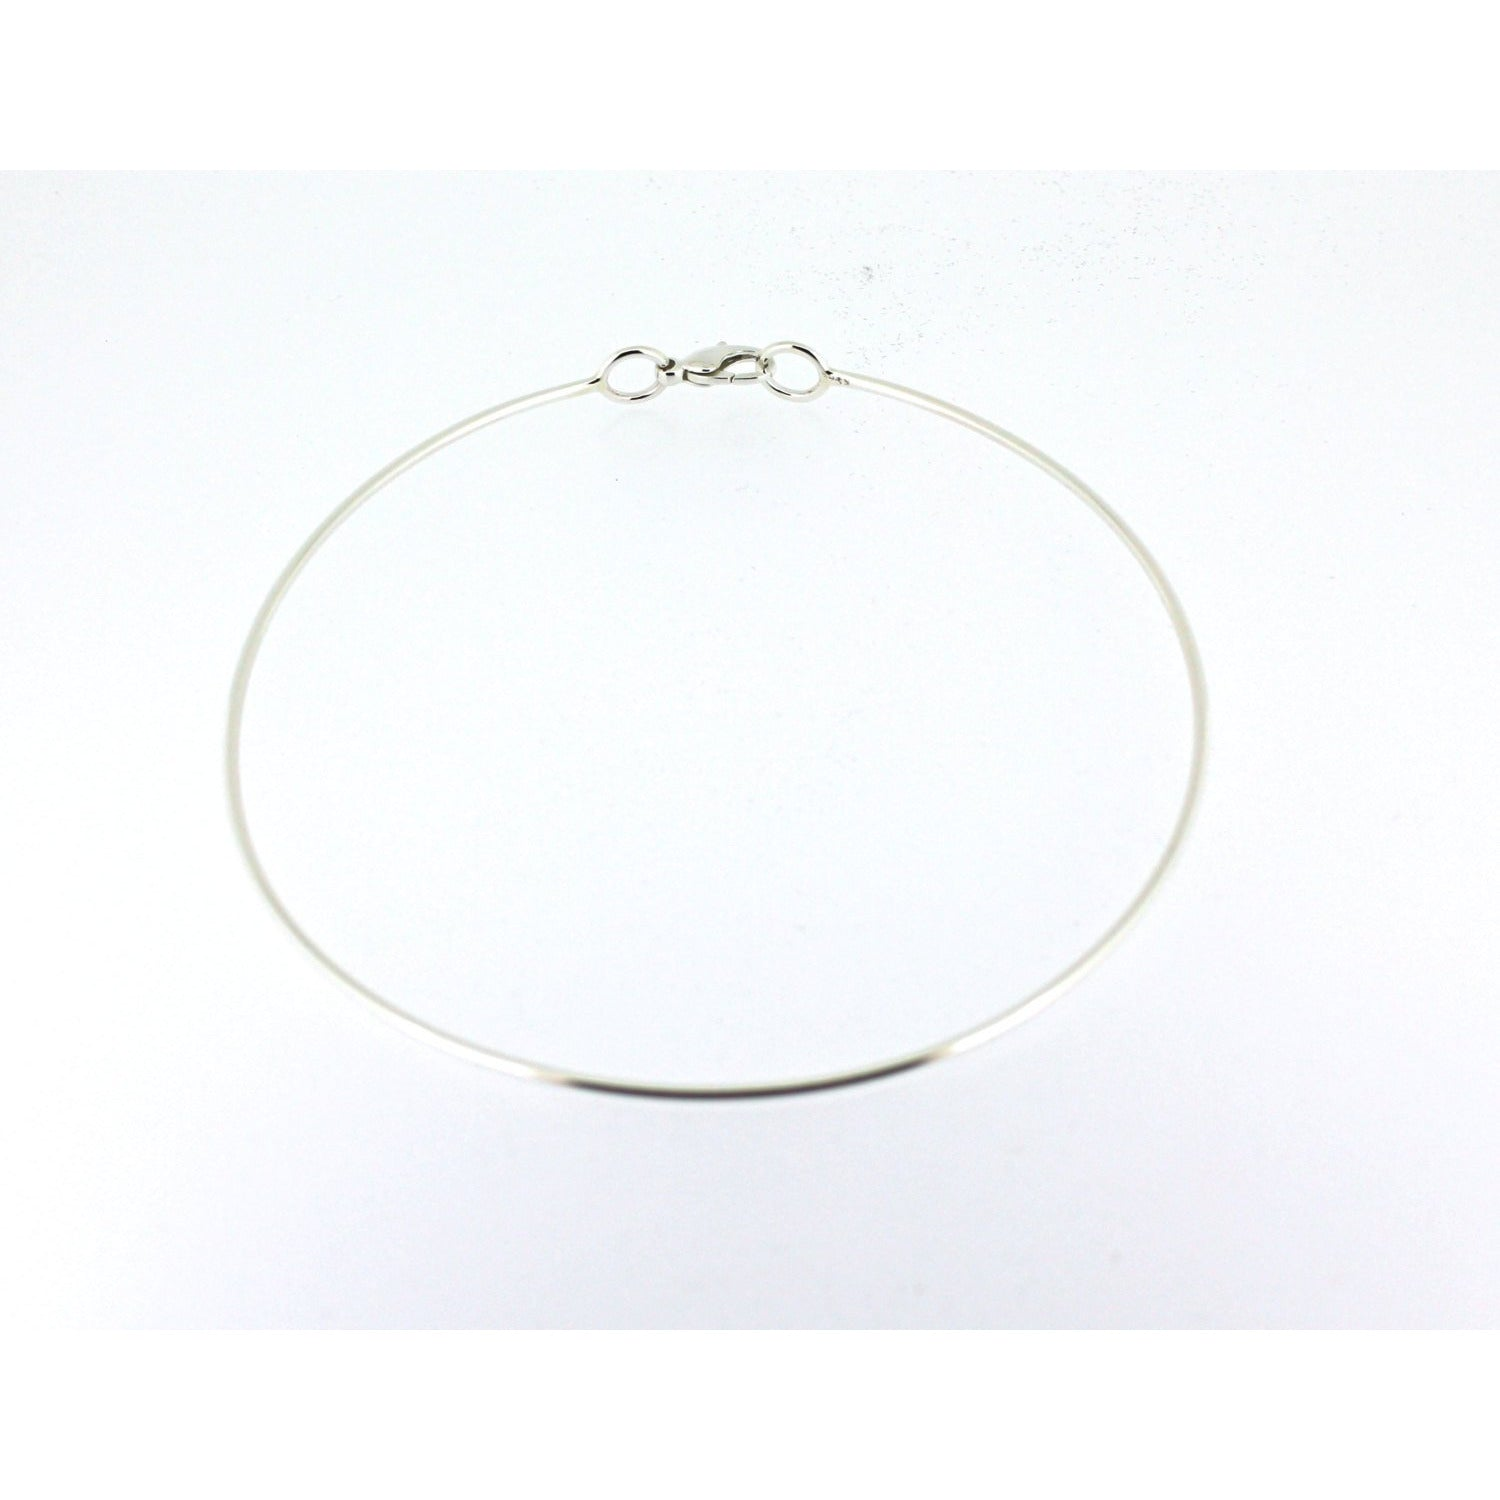 DISCREET DAY COLLAR, STERLING SILVER, CHOKER NECKLACE,UNISEX.